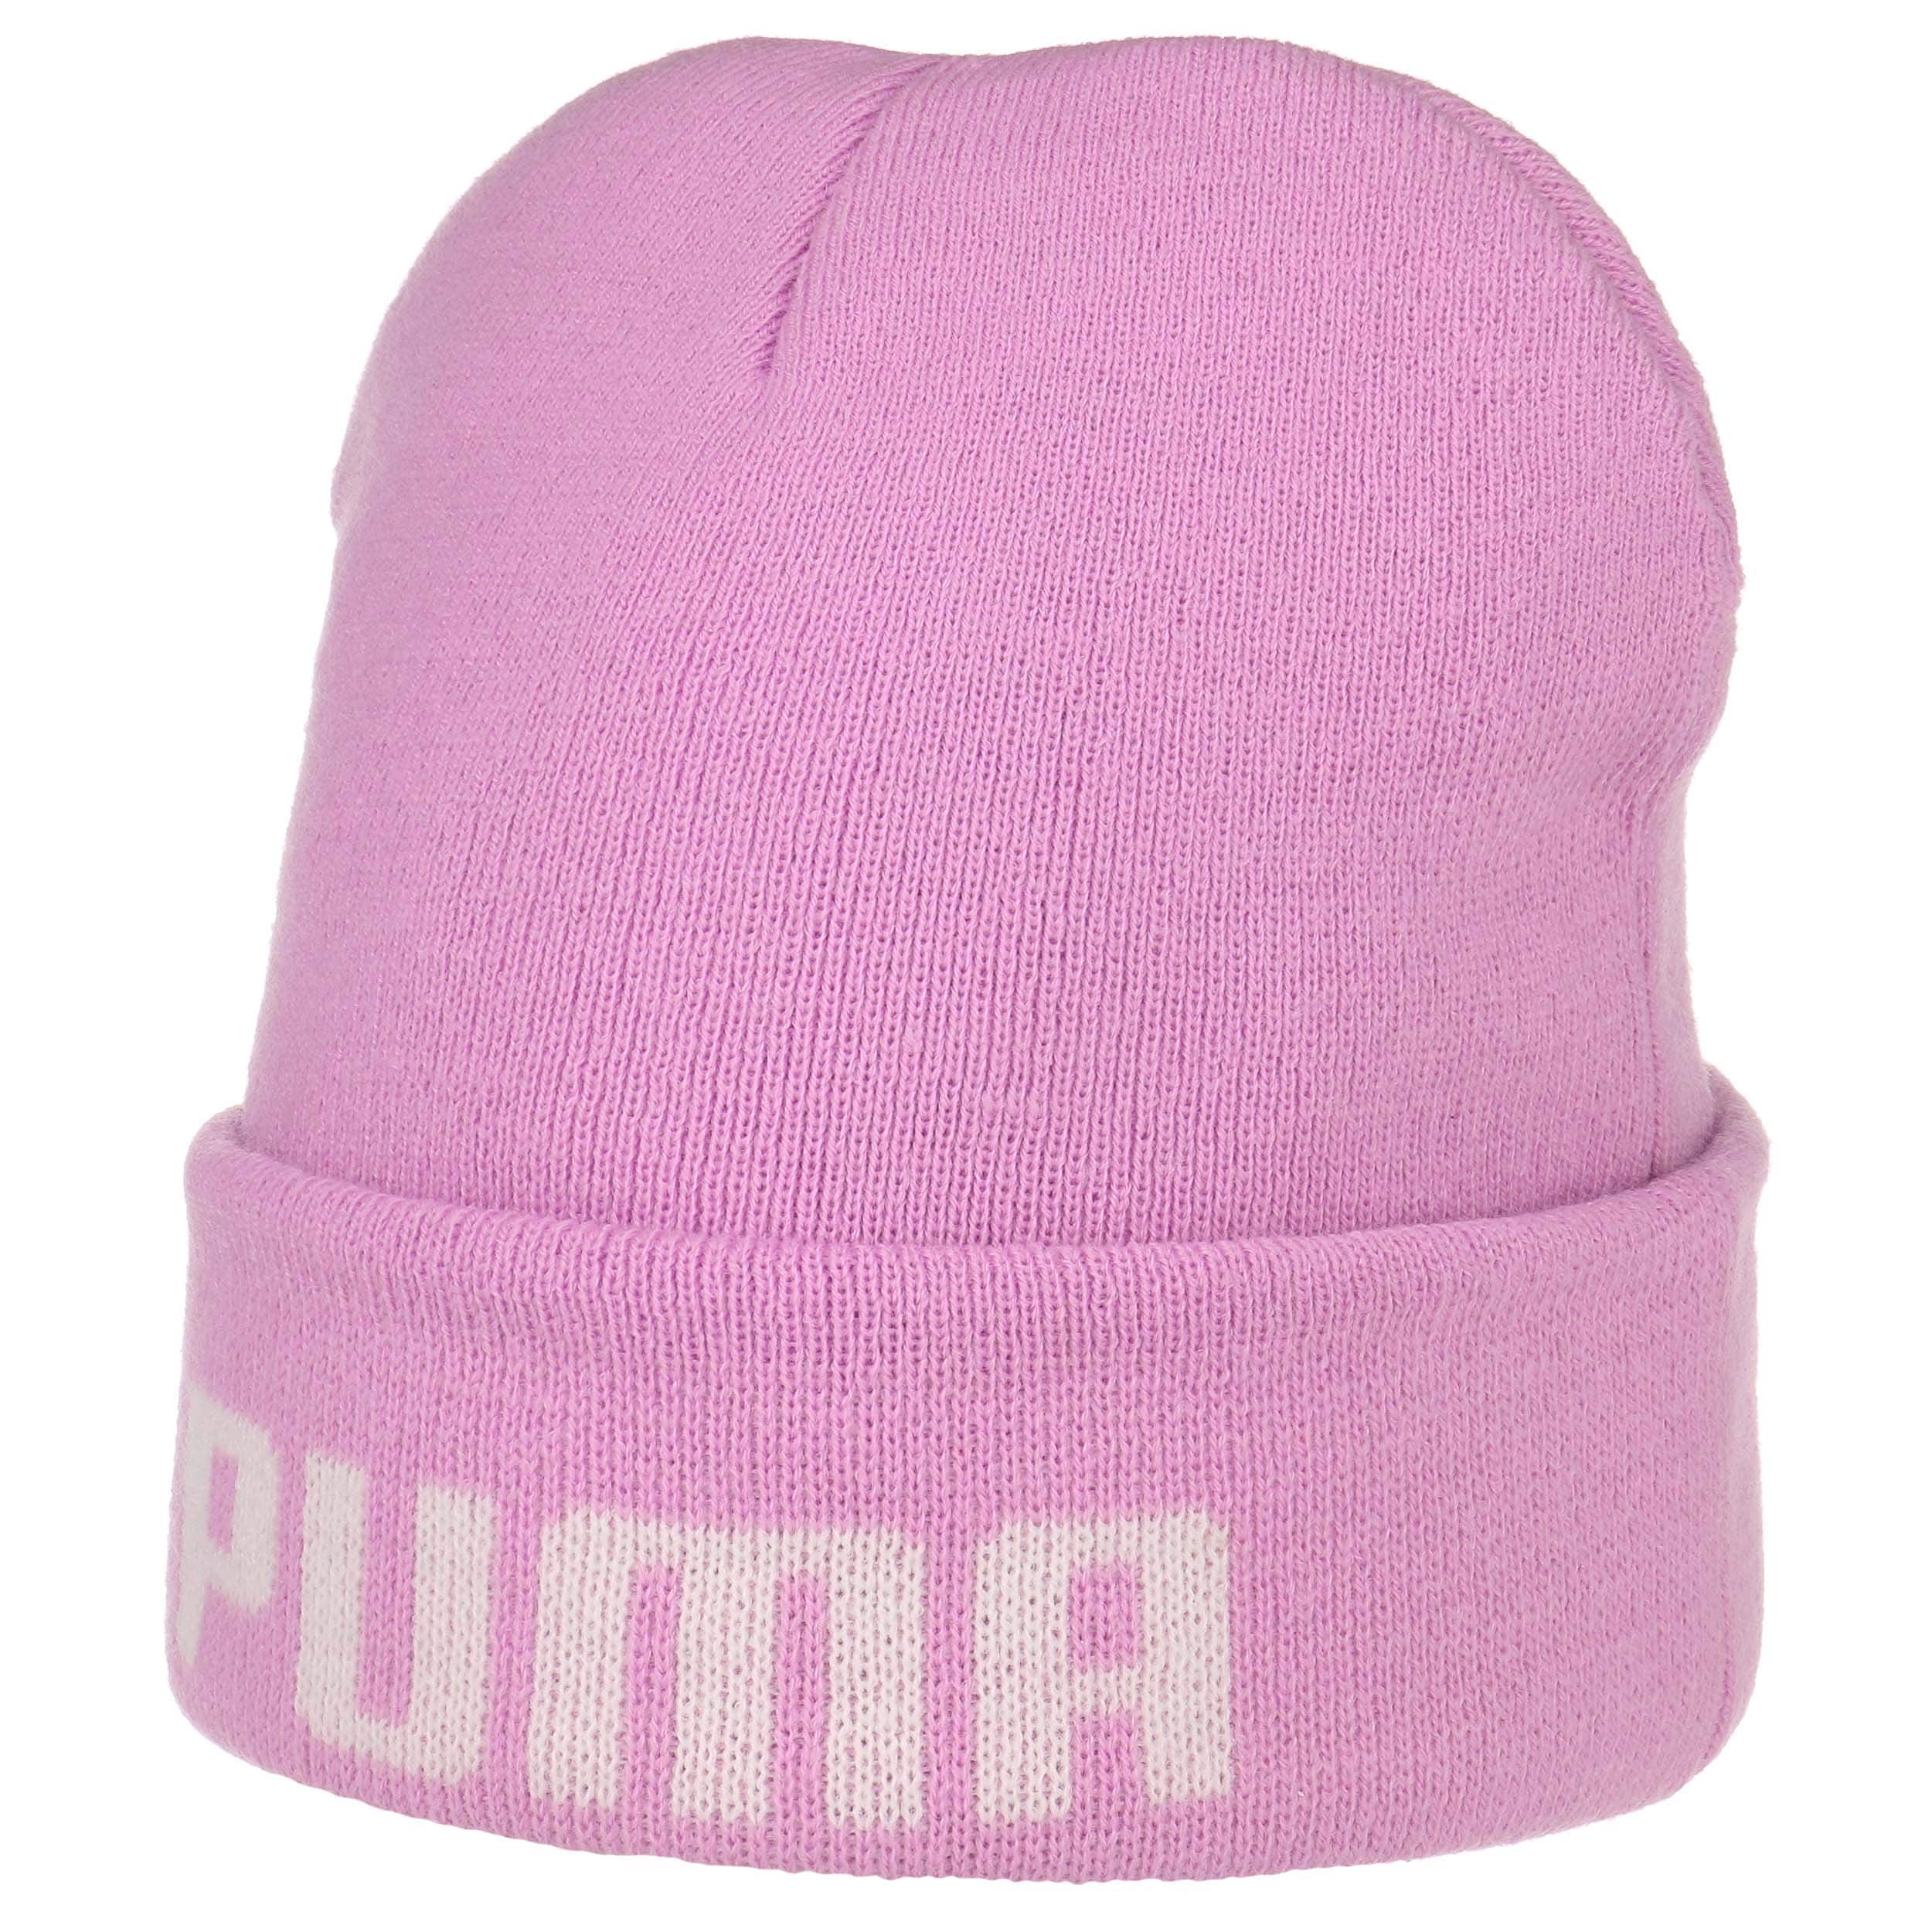 40c56276a32 ... official classic mid fit beanie hat by puma lilac 5 626ad 0967f